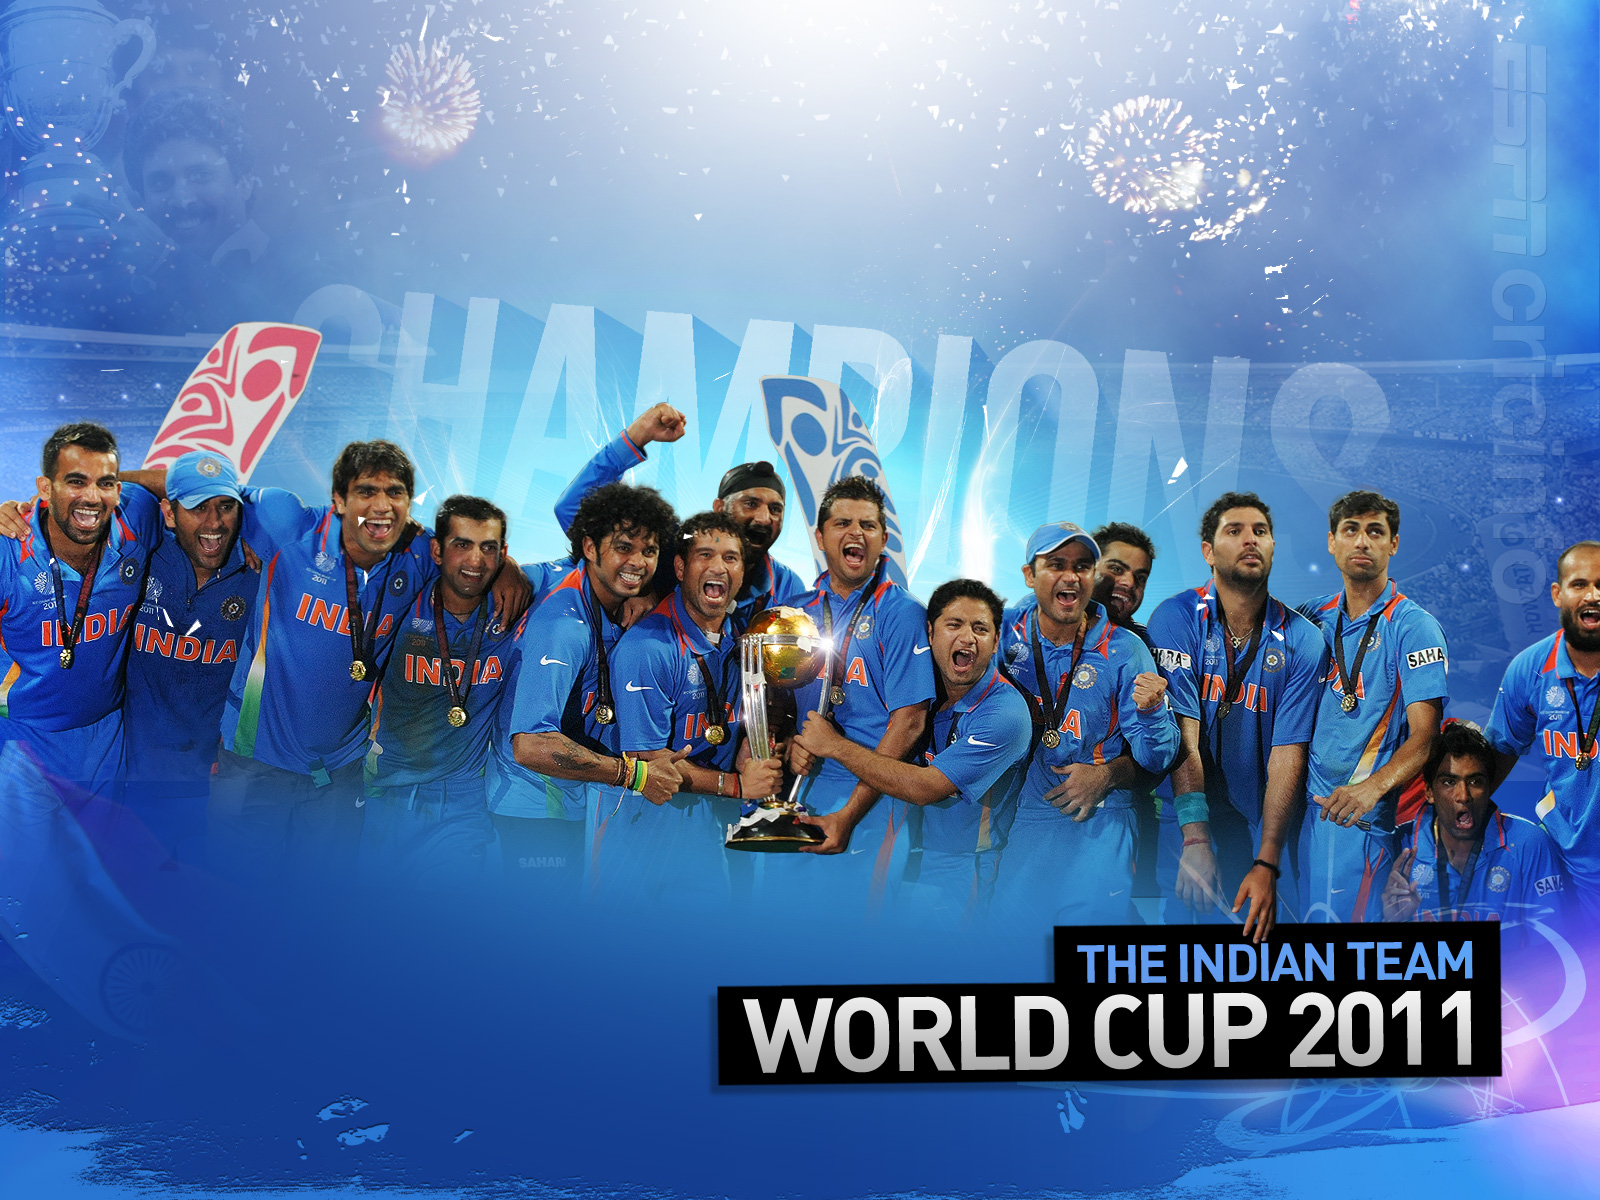 India Team World Cup 2011 560.24 Kb